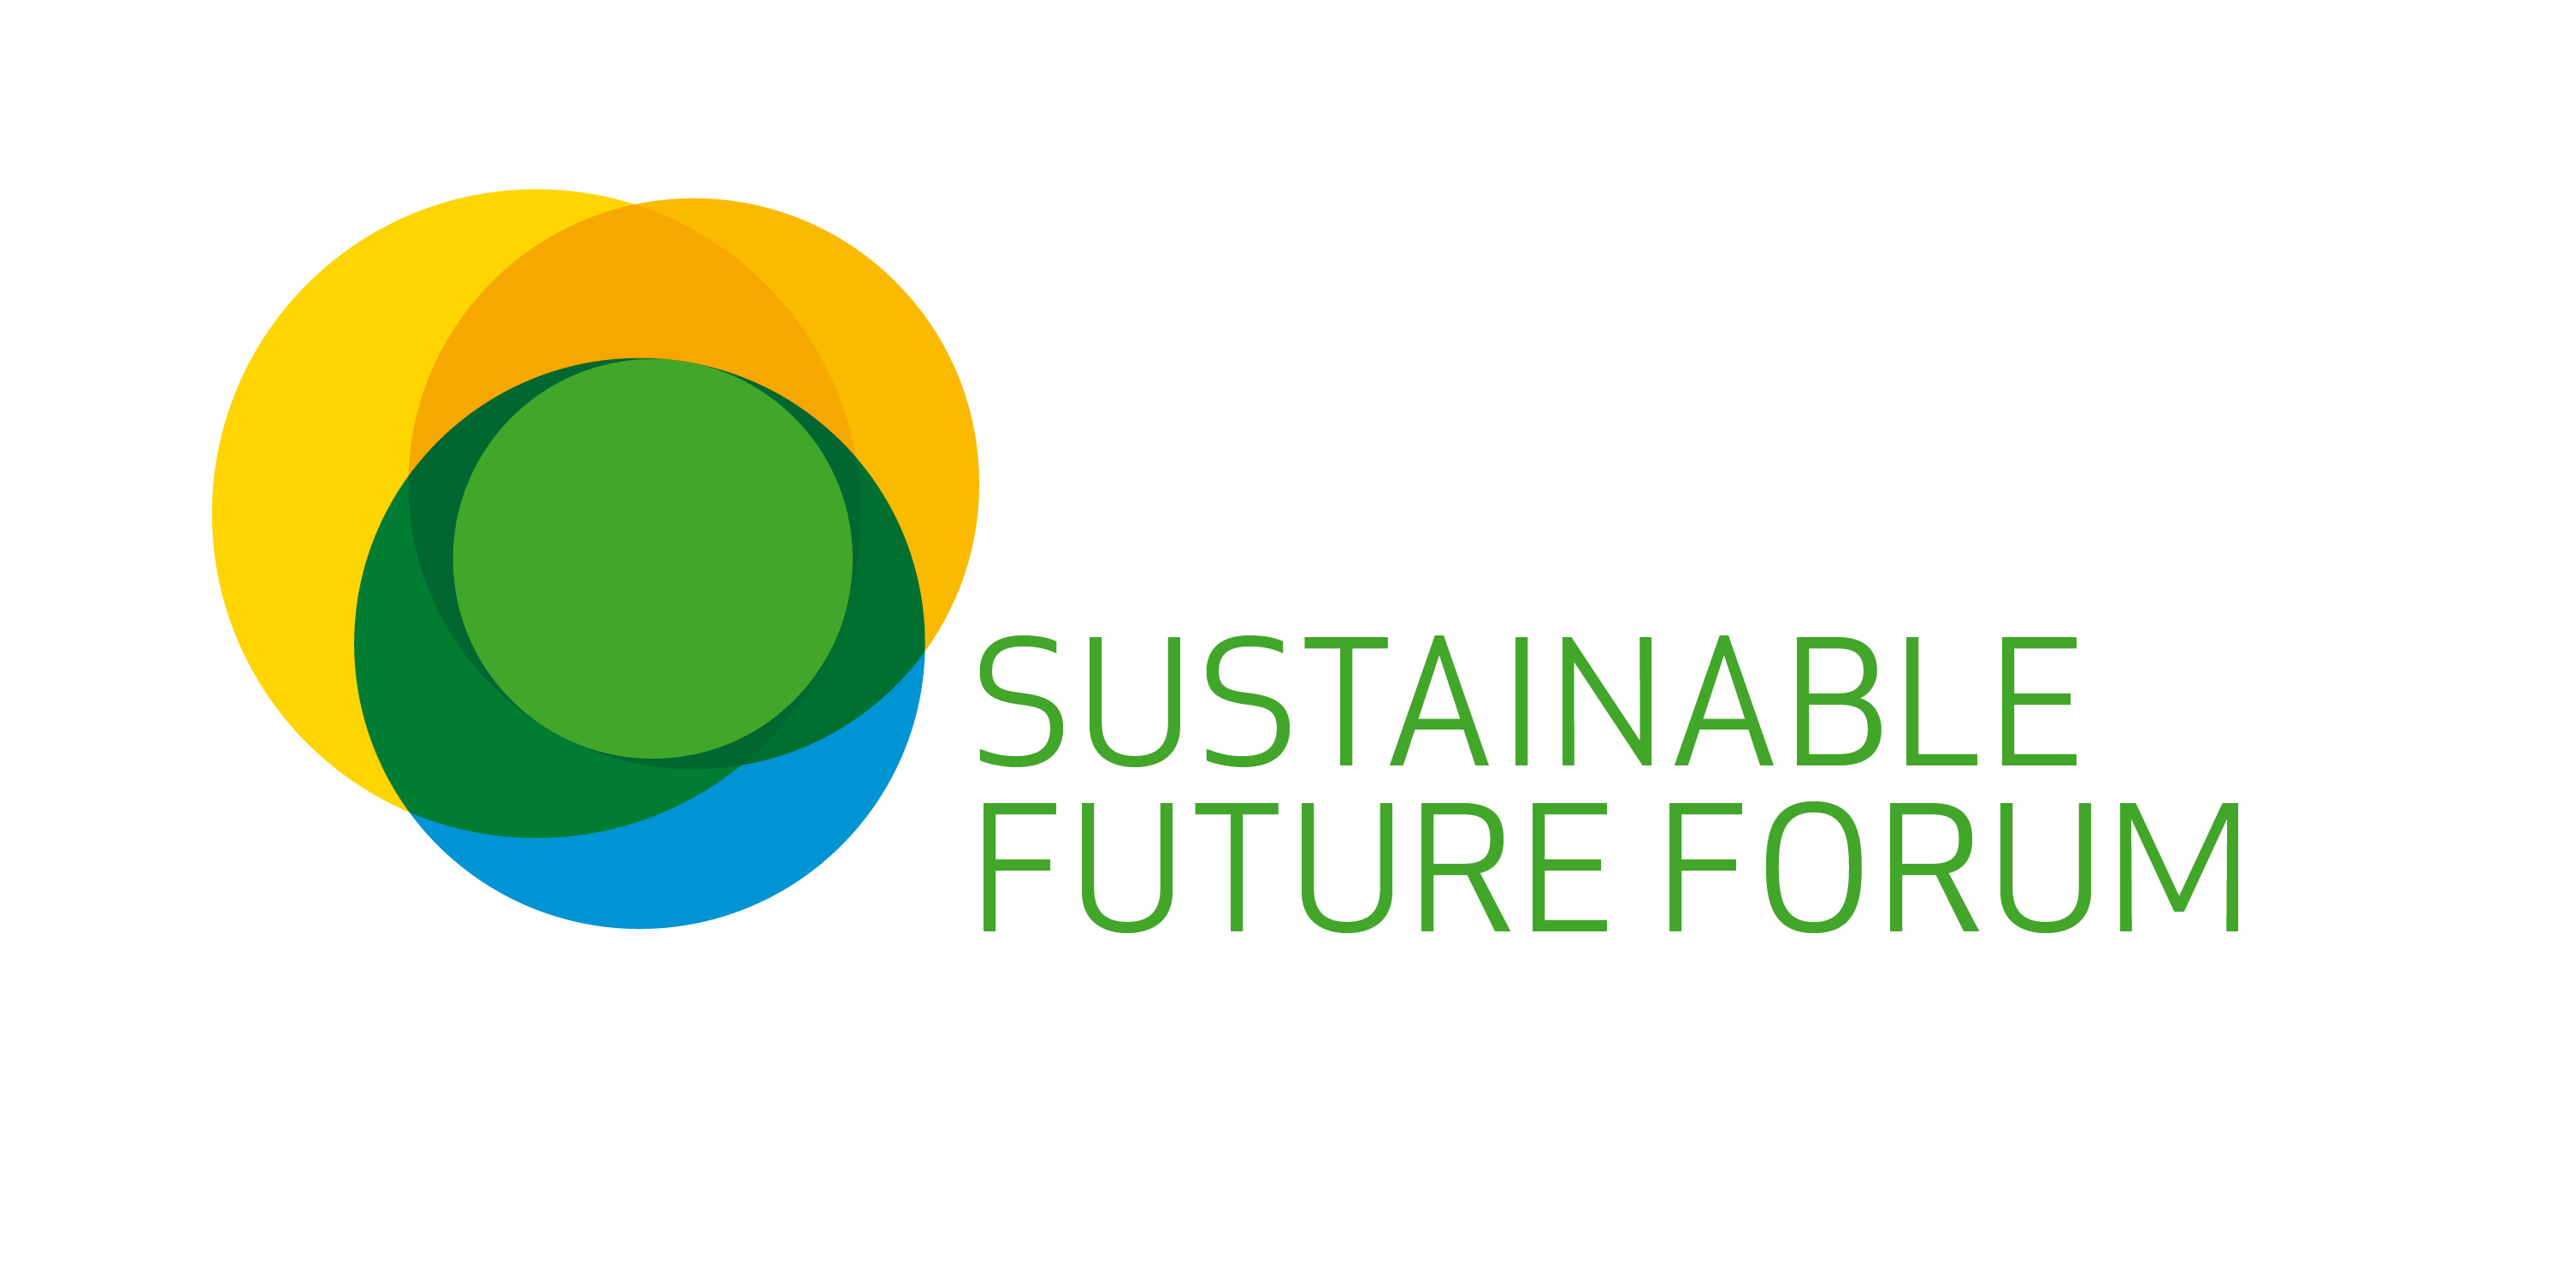 Sustainable Future Forum presented by the Green for Growth Fund